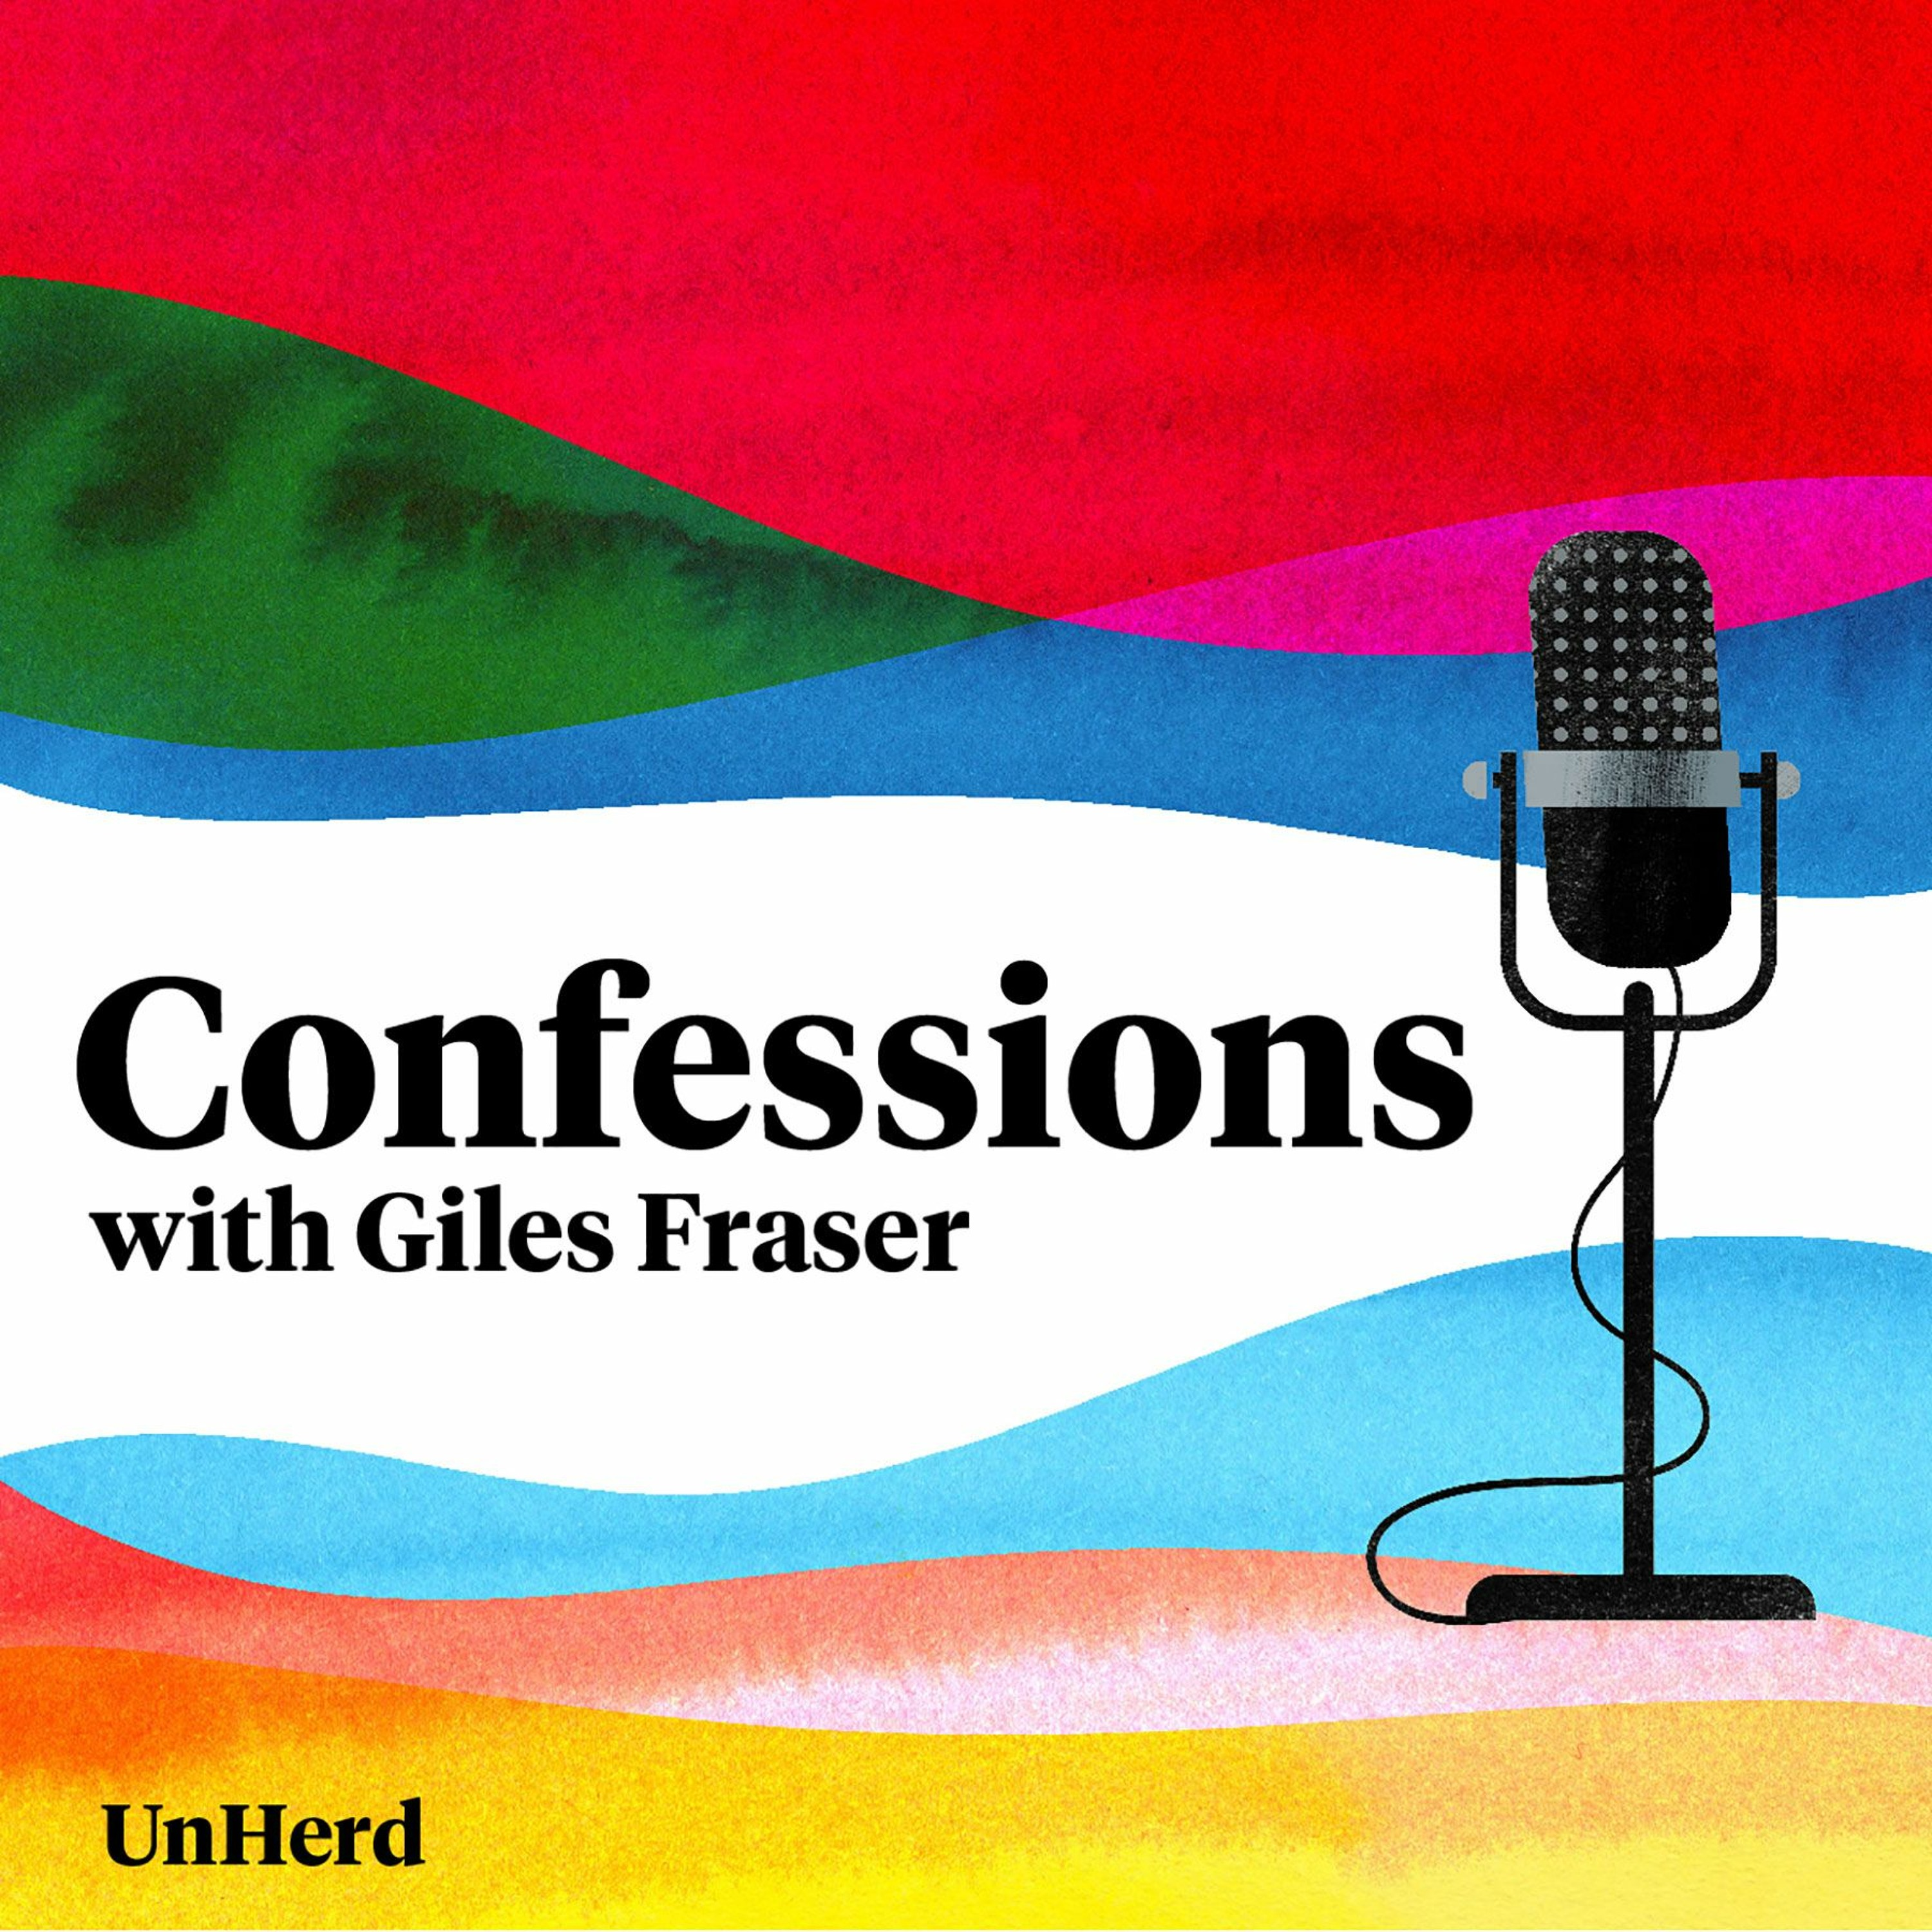 Charles Moore's Confessions — Thatcher, theology and the Tories